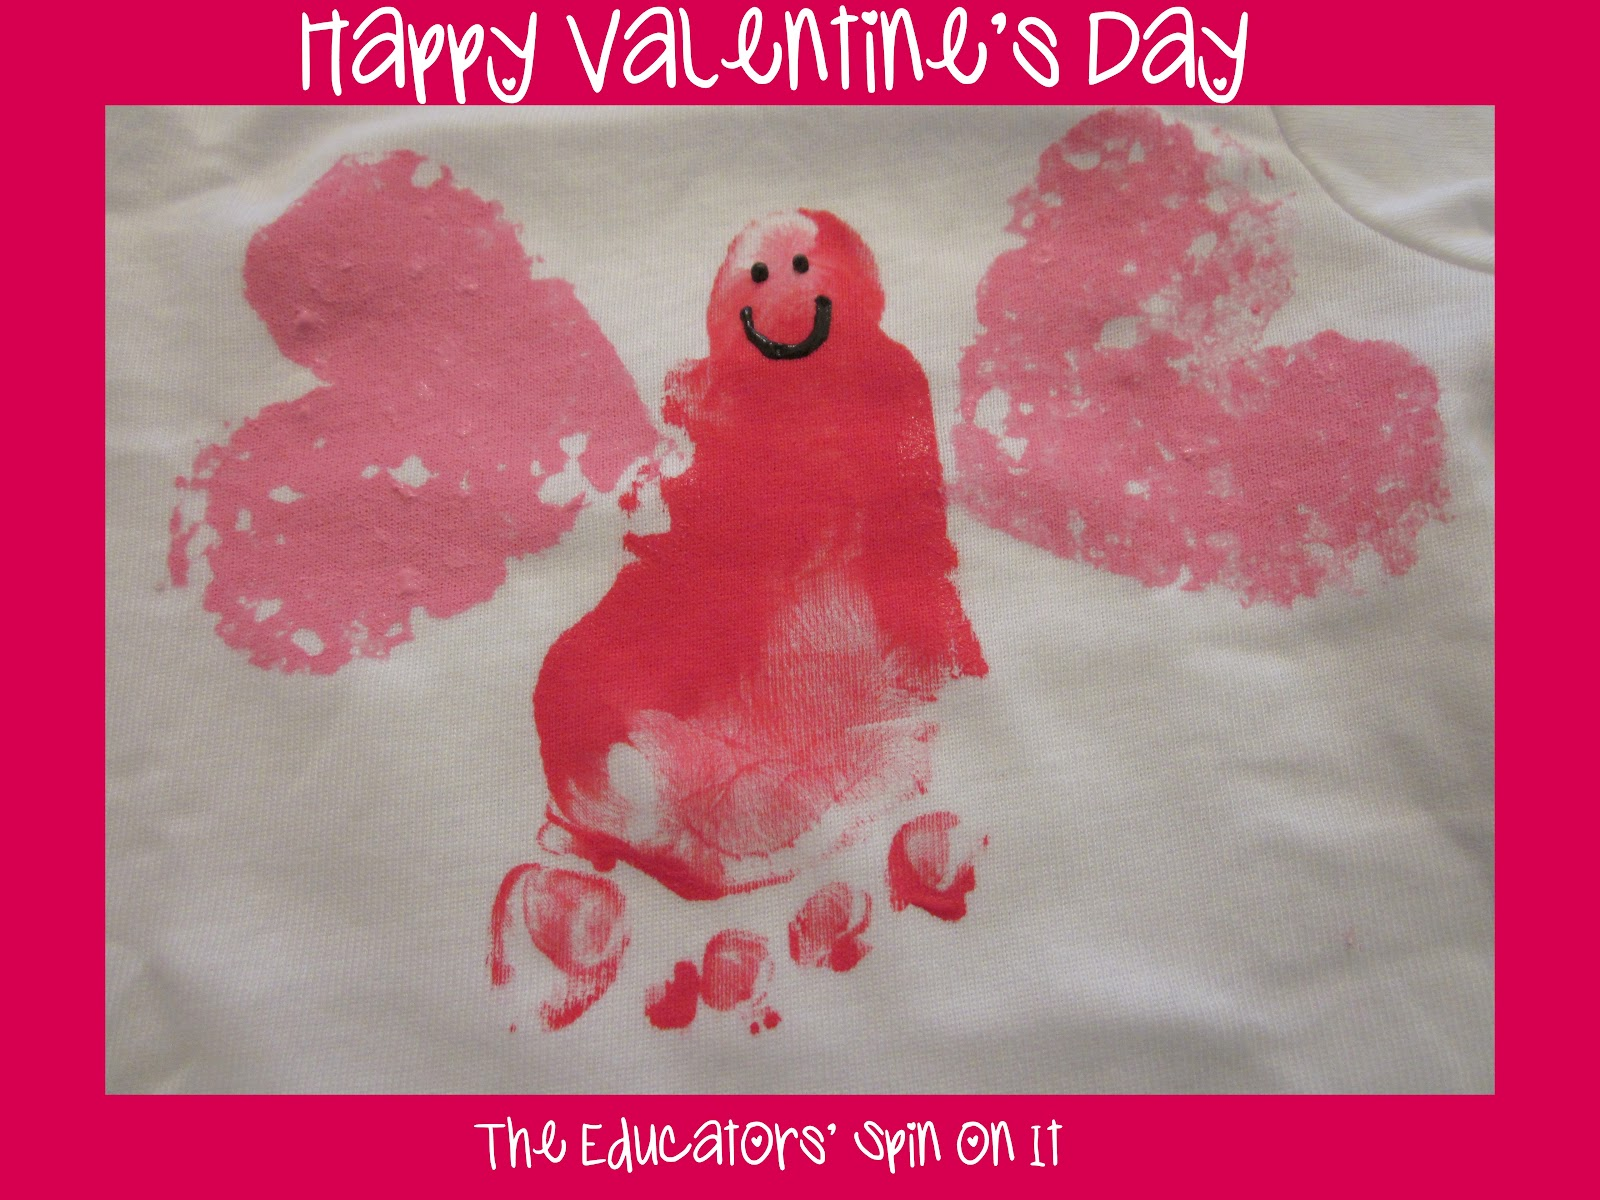 Valentineu0027s Day Activities For Babies And Toddlers From The Educatorsu0027 Spin  On It